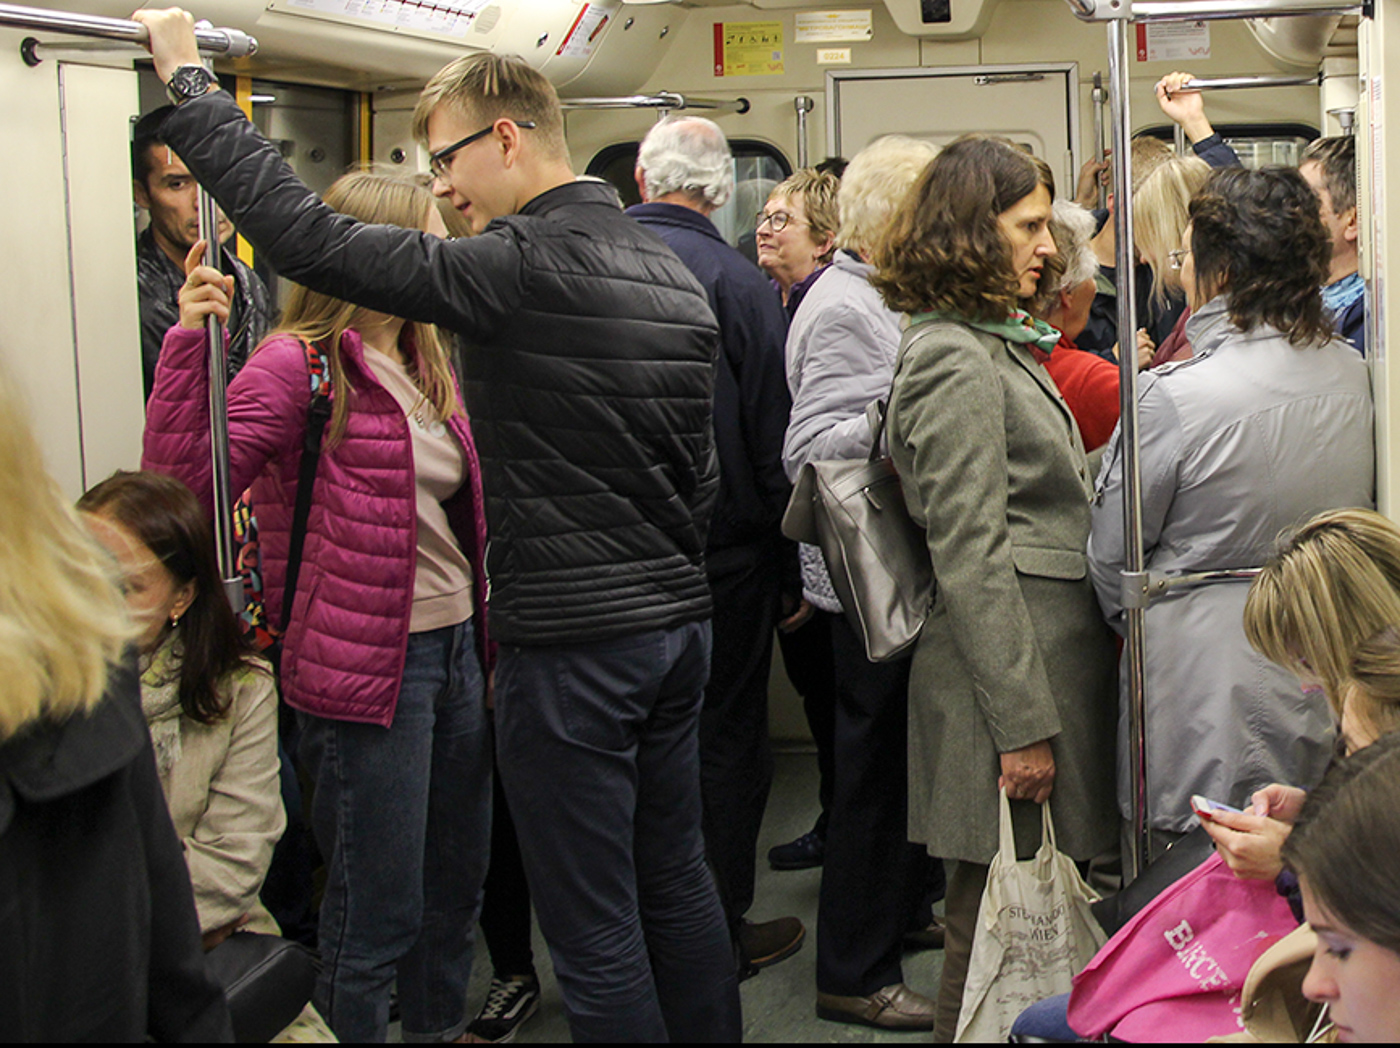 Travelling On the Moscow Metro